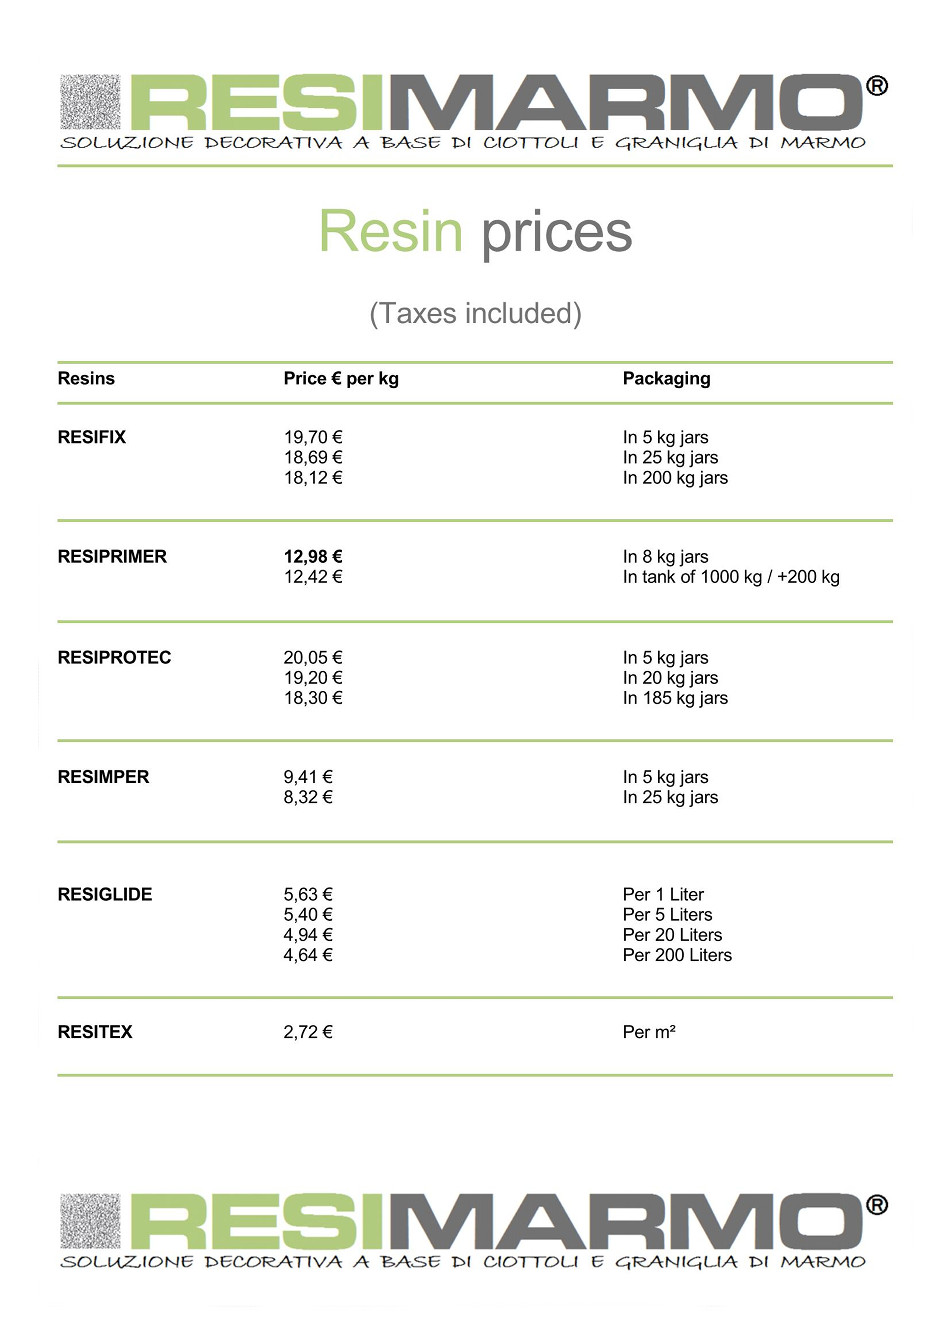 The marble aggregates - Resine Prices